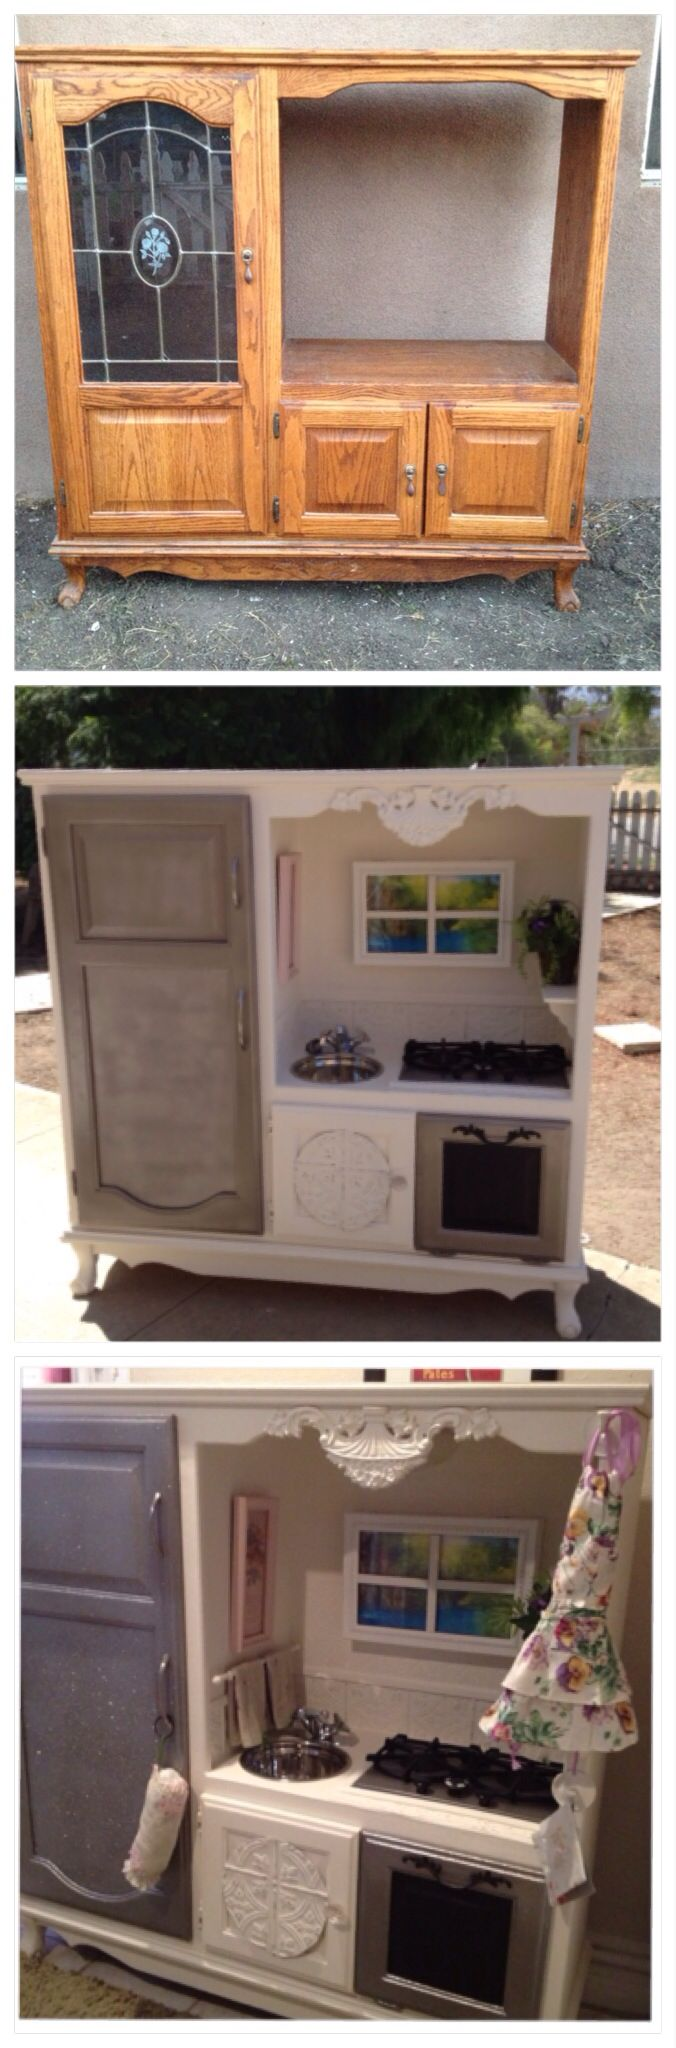 turn an old cabinet into a kid s diner diners kids s and turn an old cabinet into a kid s diner diners kids s and entertainment